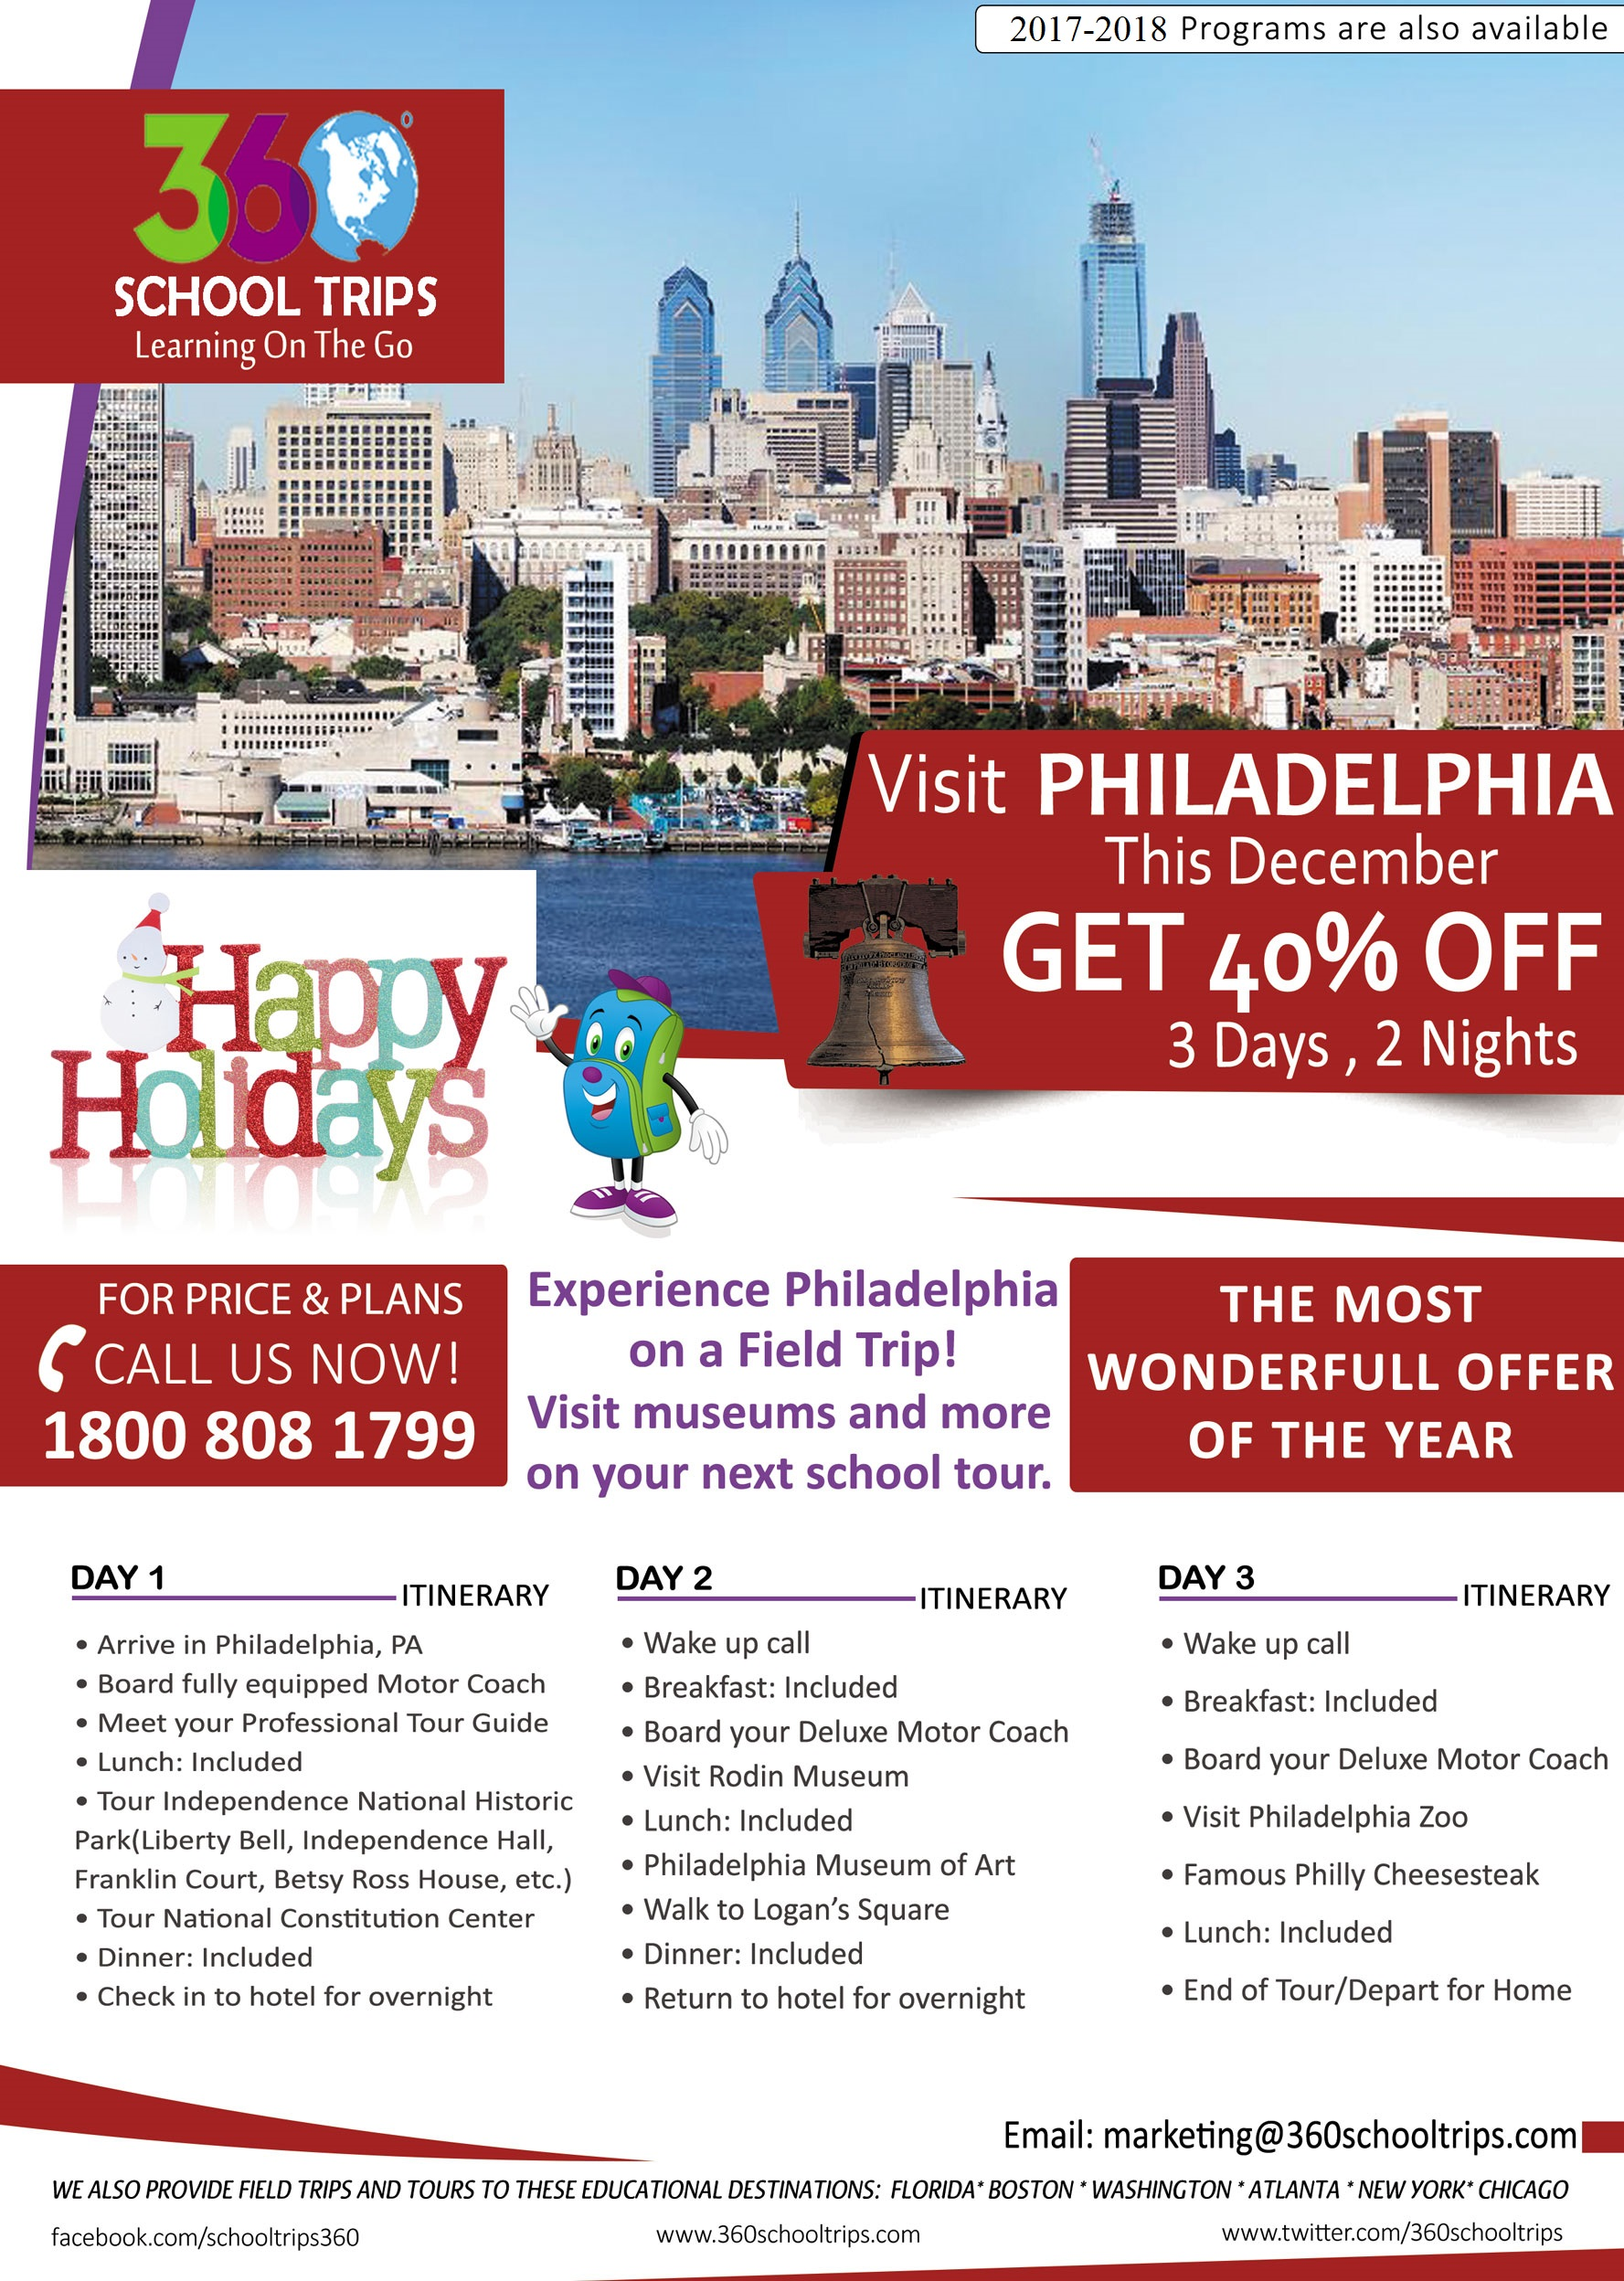 Happy Holidays Sale Visit PHILADELPHIA This December & Receive 40% Off